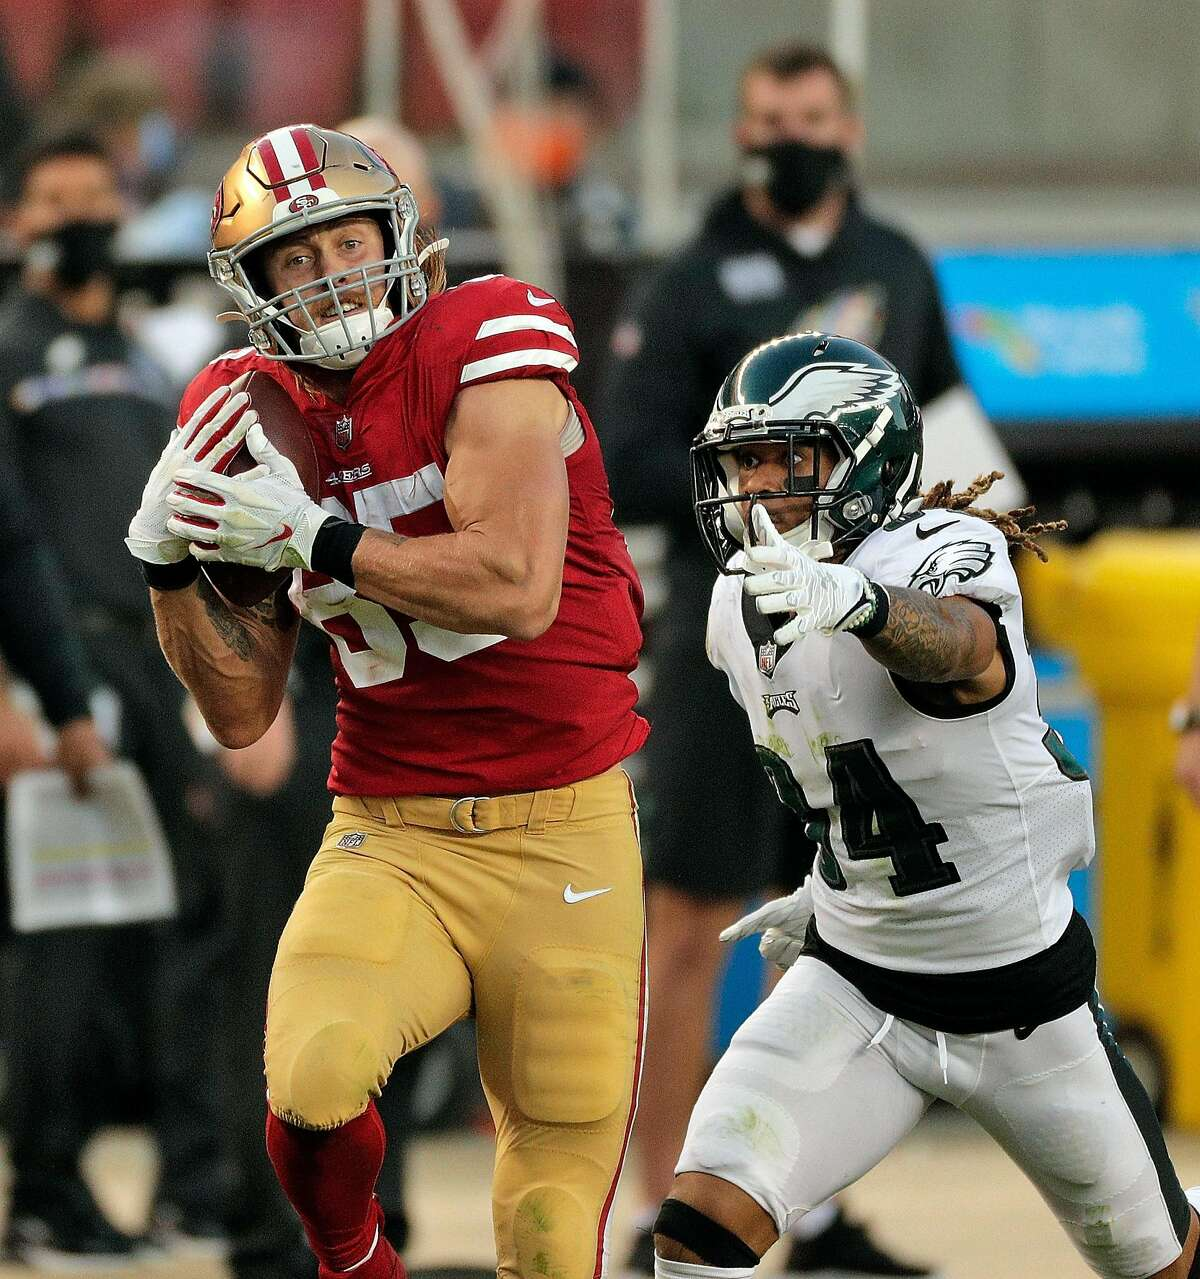 George Kittle (85) catches a 38-yard reception In the first half as the San Francisco 49ers played the Philadelphia Eagles at Levi's Stadium in Santa Clara, Calif., on Sunday, October 4, 2020.